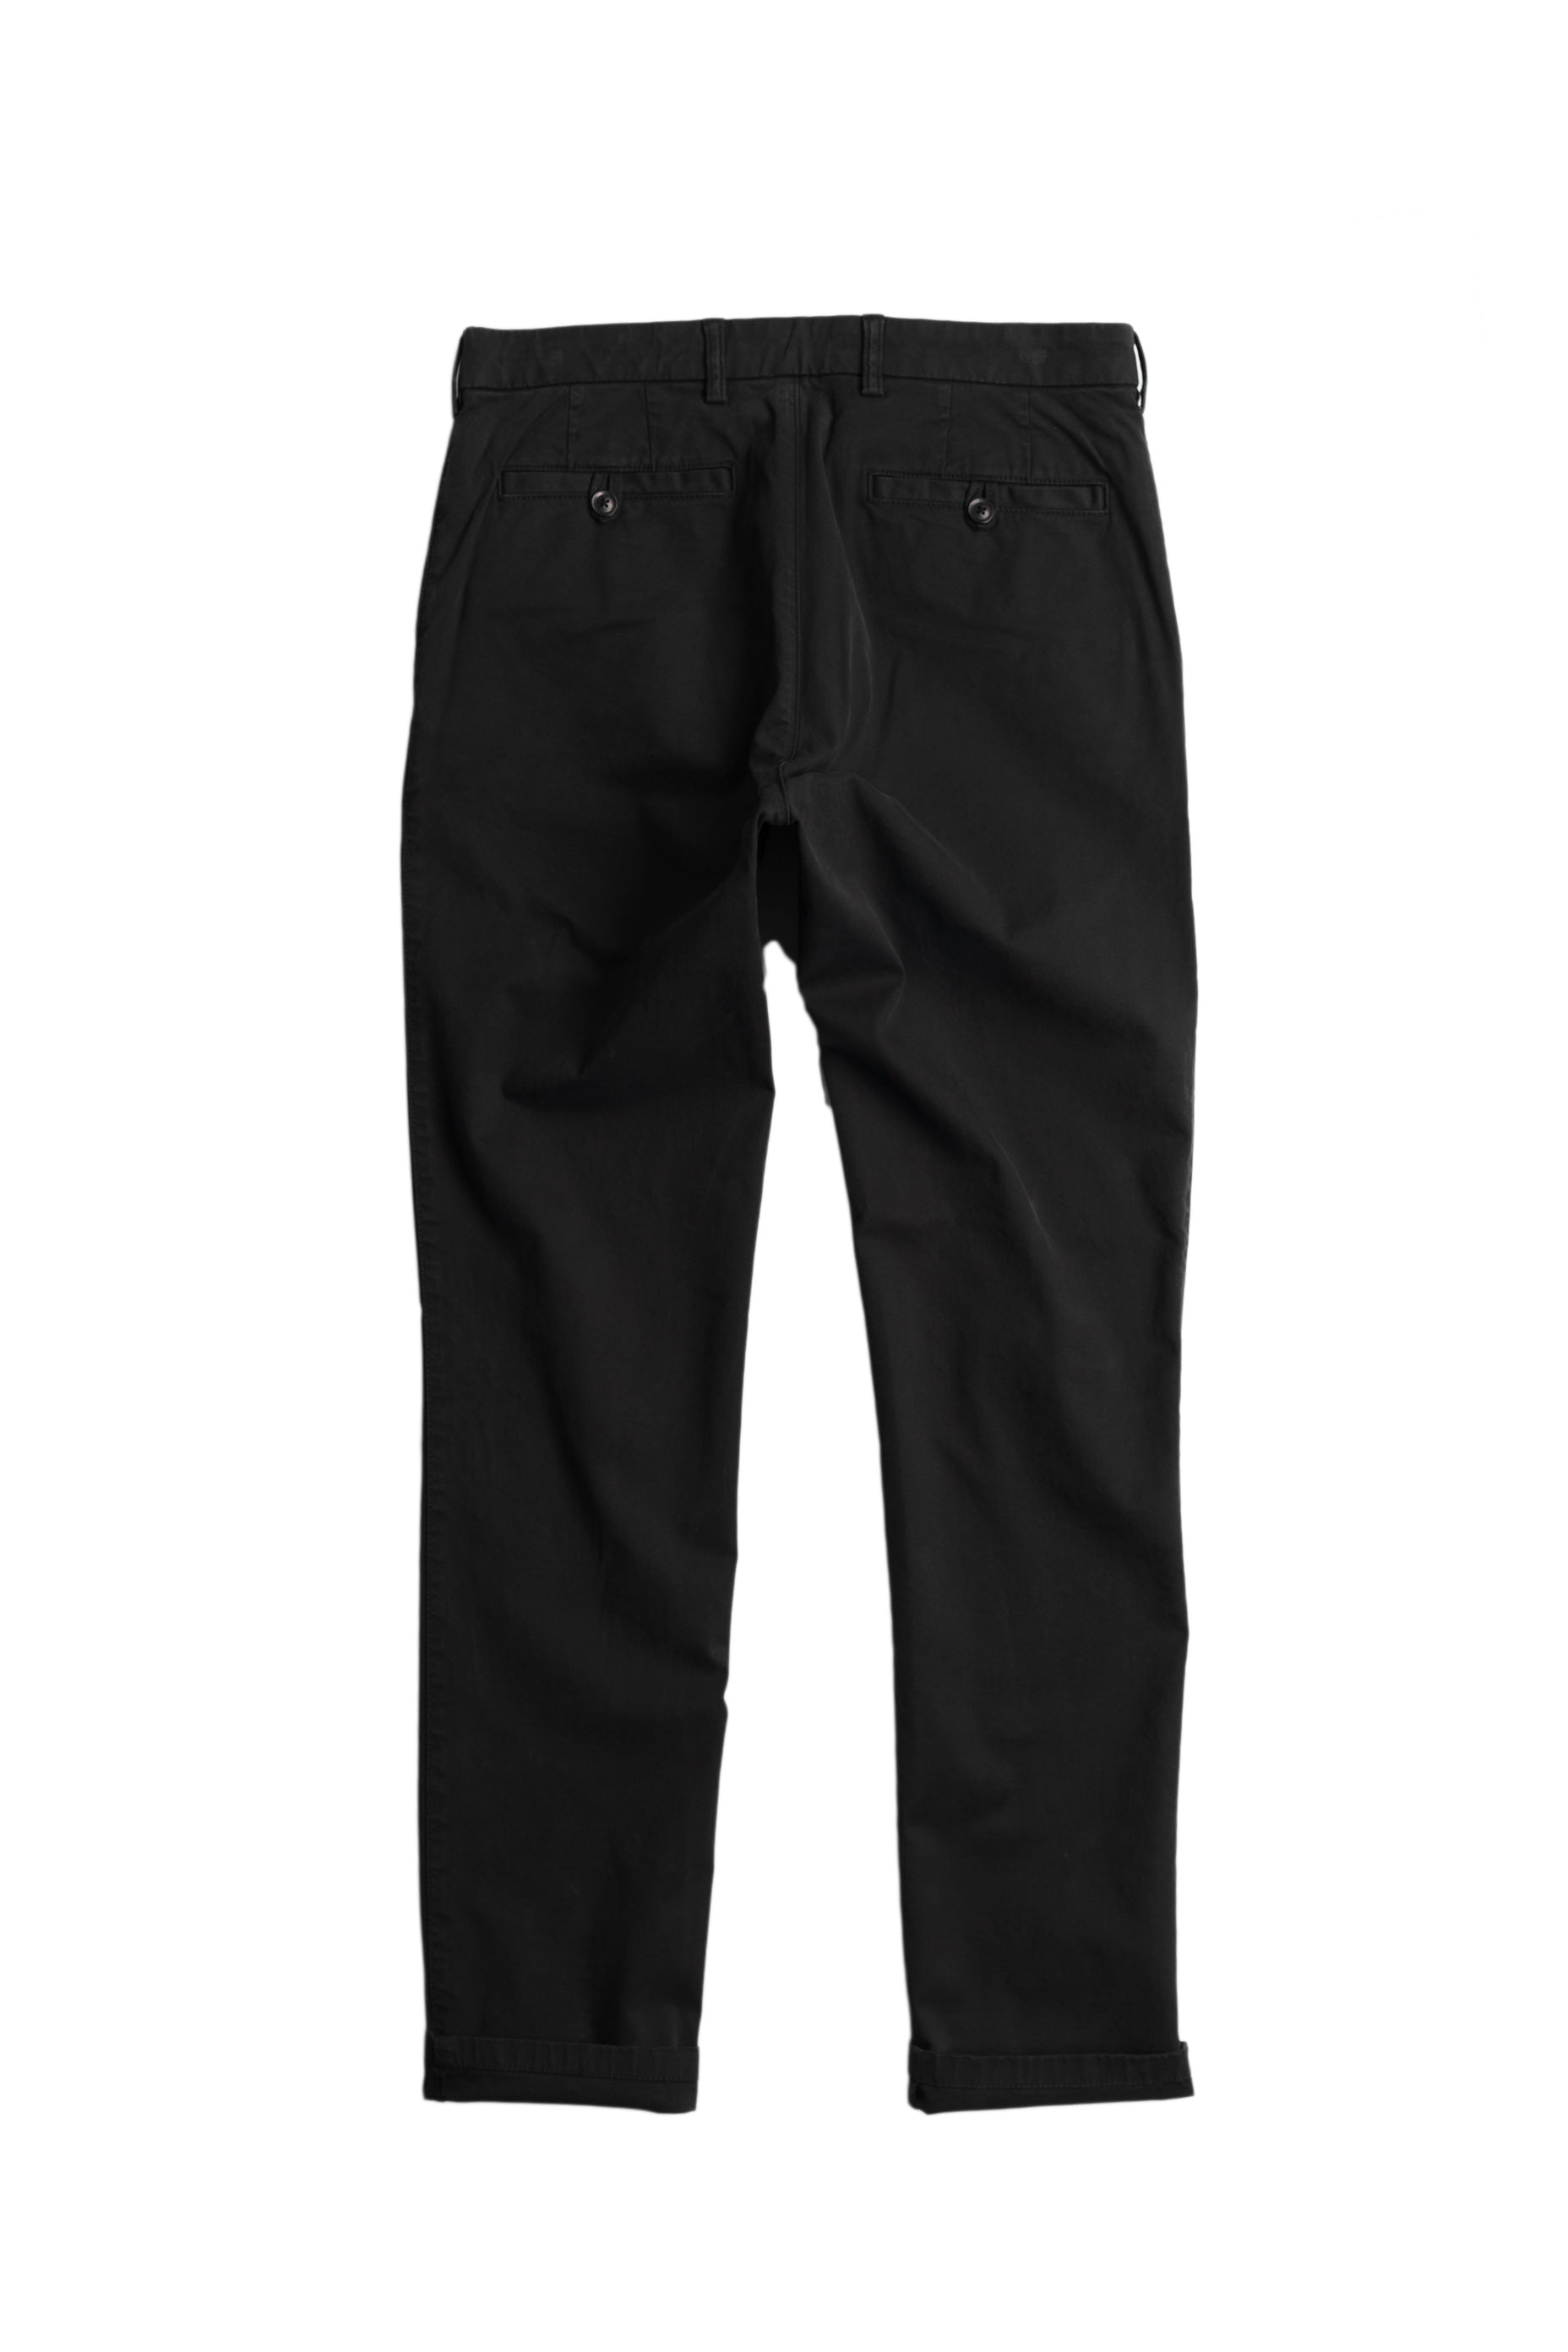 Stretch Chino Black Back